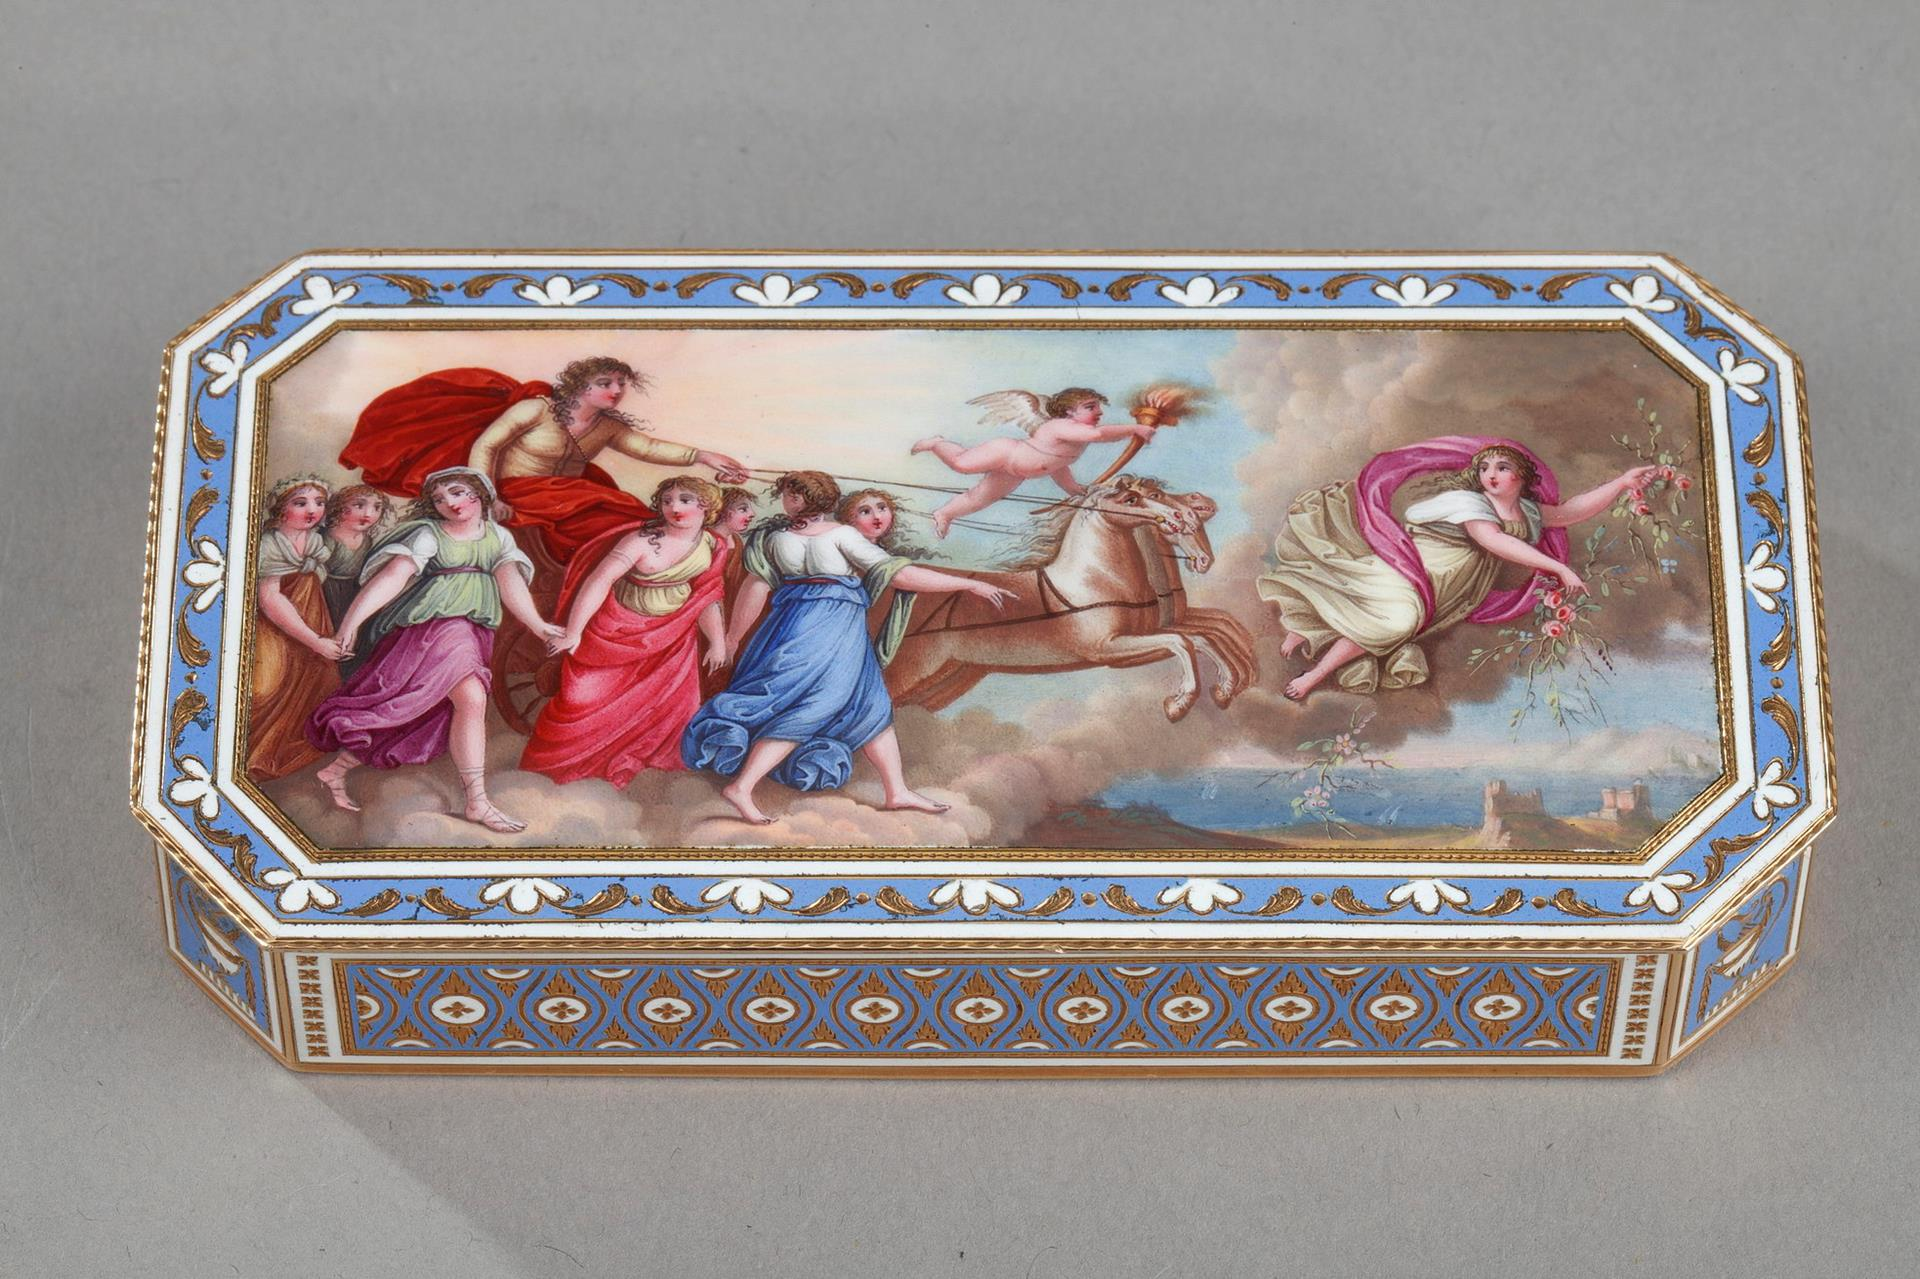 End-18th century SWISS ENAMELLED GOLD SNUFF-BOX BY GUIDON, RÉMOND & GIDE